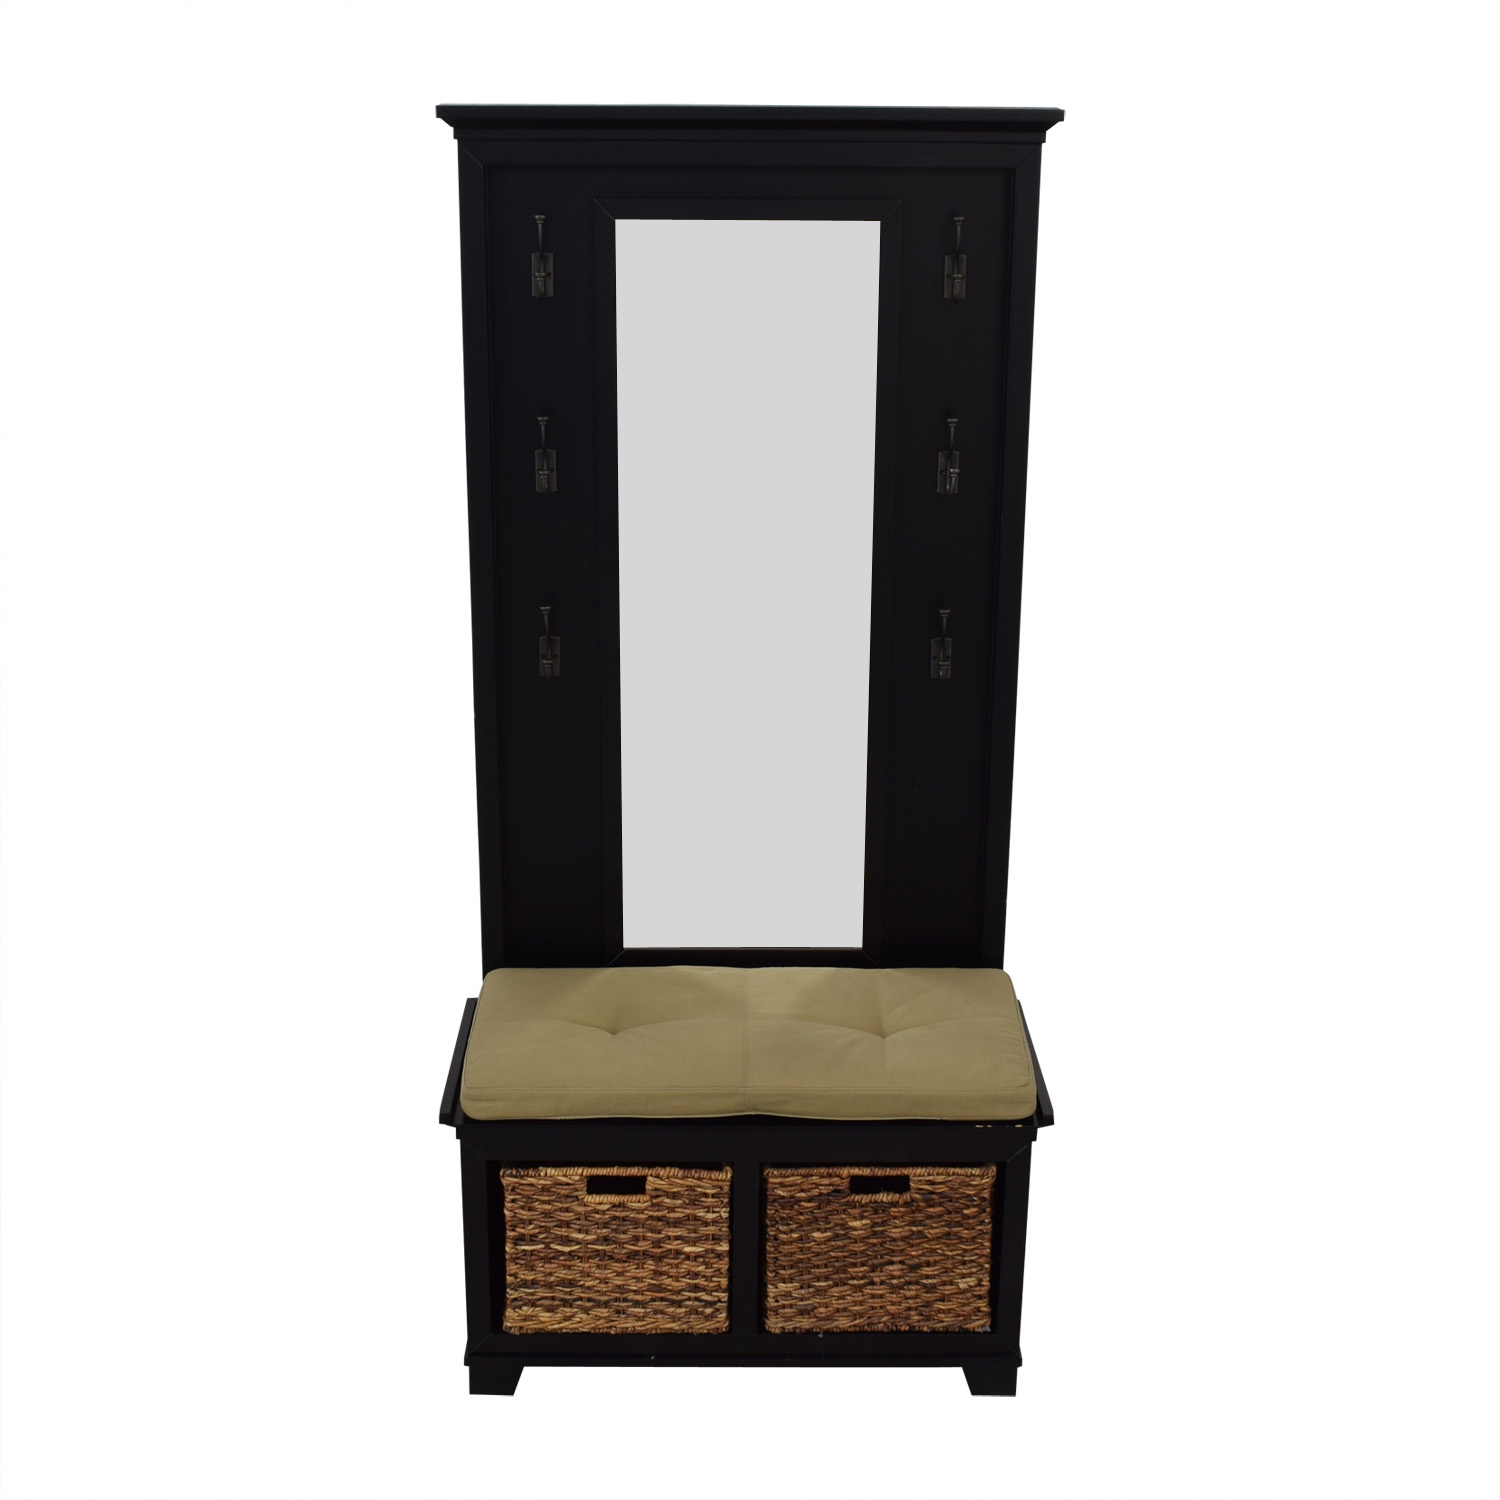 Crate & Barrel Crate & Barrel Windham Bench and Mirrored Panel price